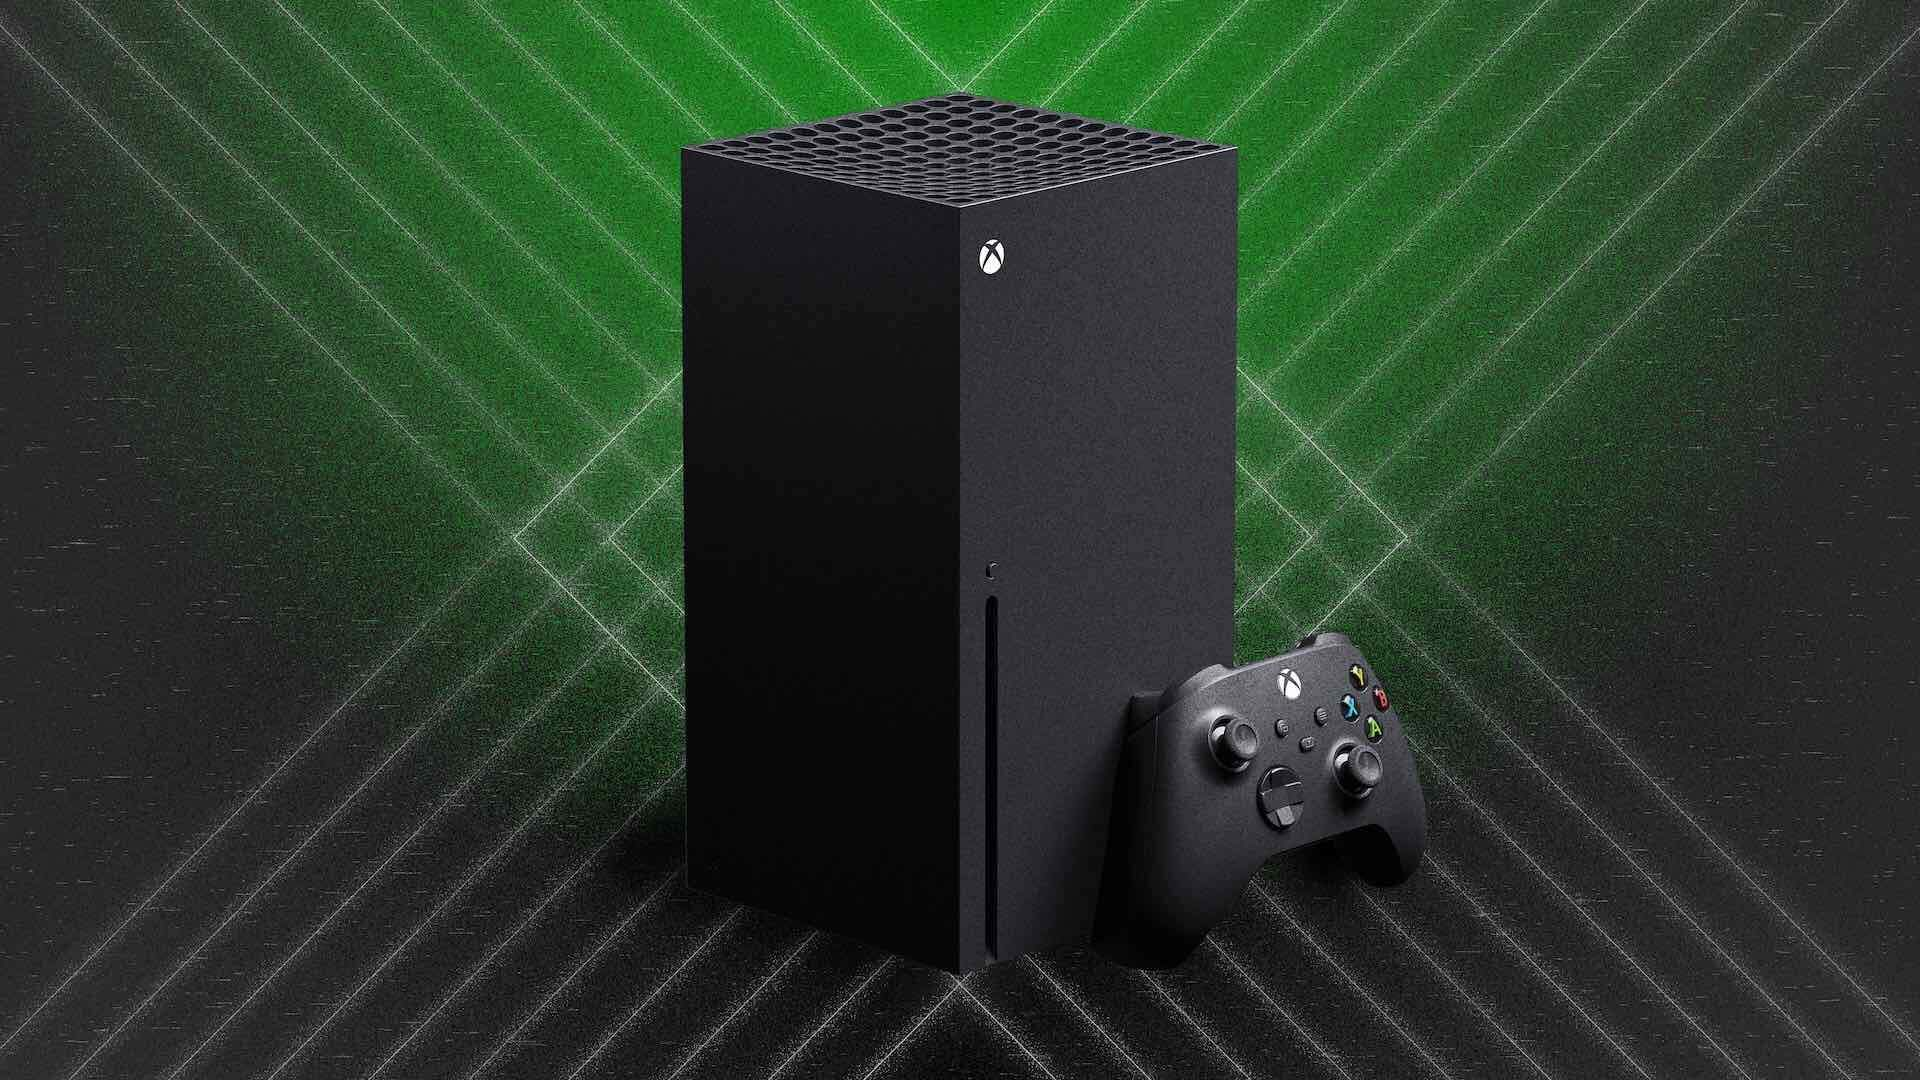 Xbox Series X Details Are Here: We Round Up All the Info on the New Specs and More